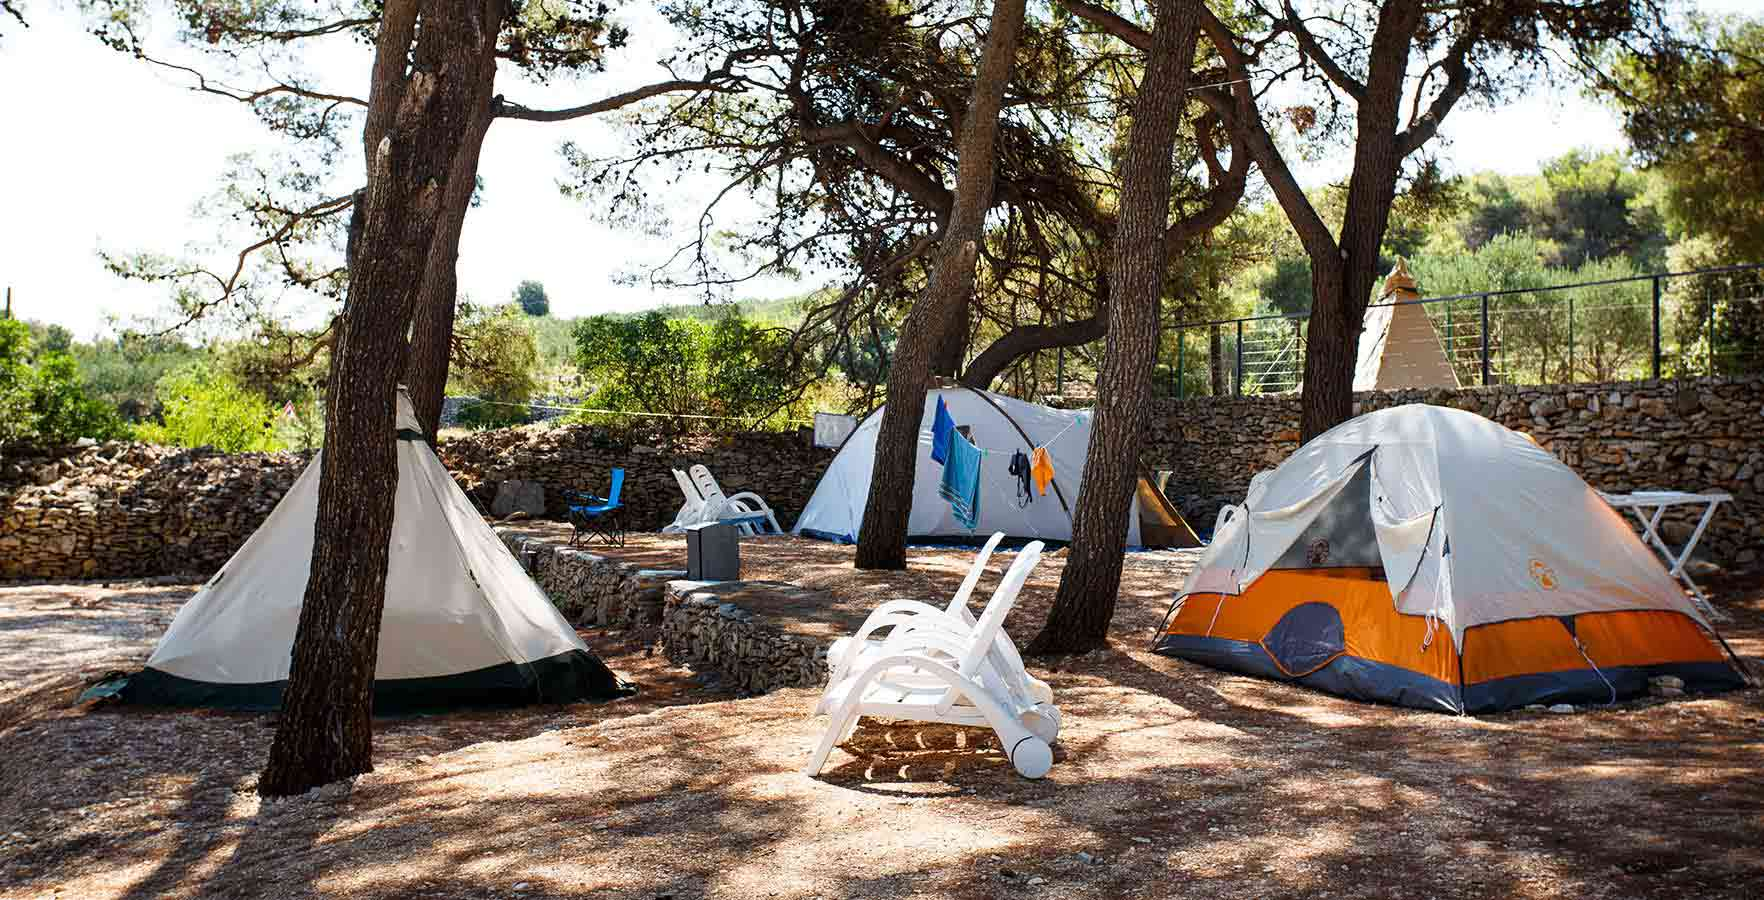 Camping Waterman Beach Village - kamperen in de schaduw